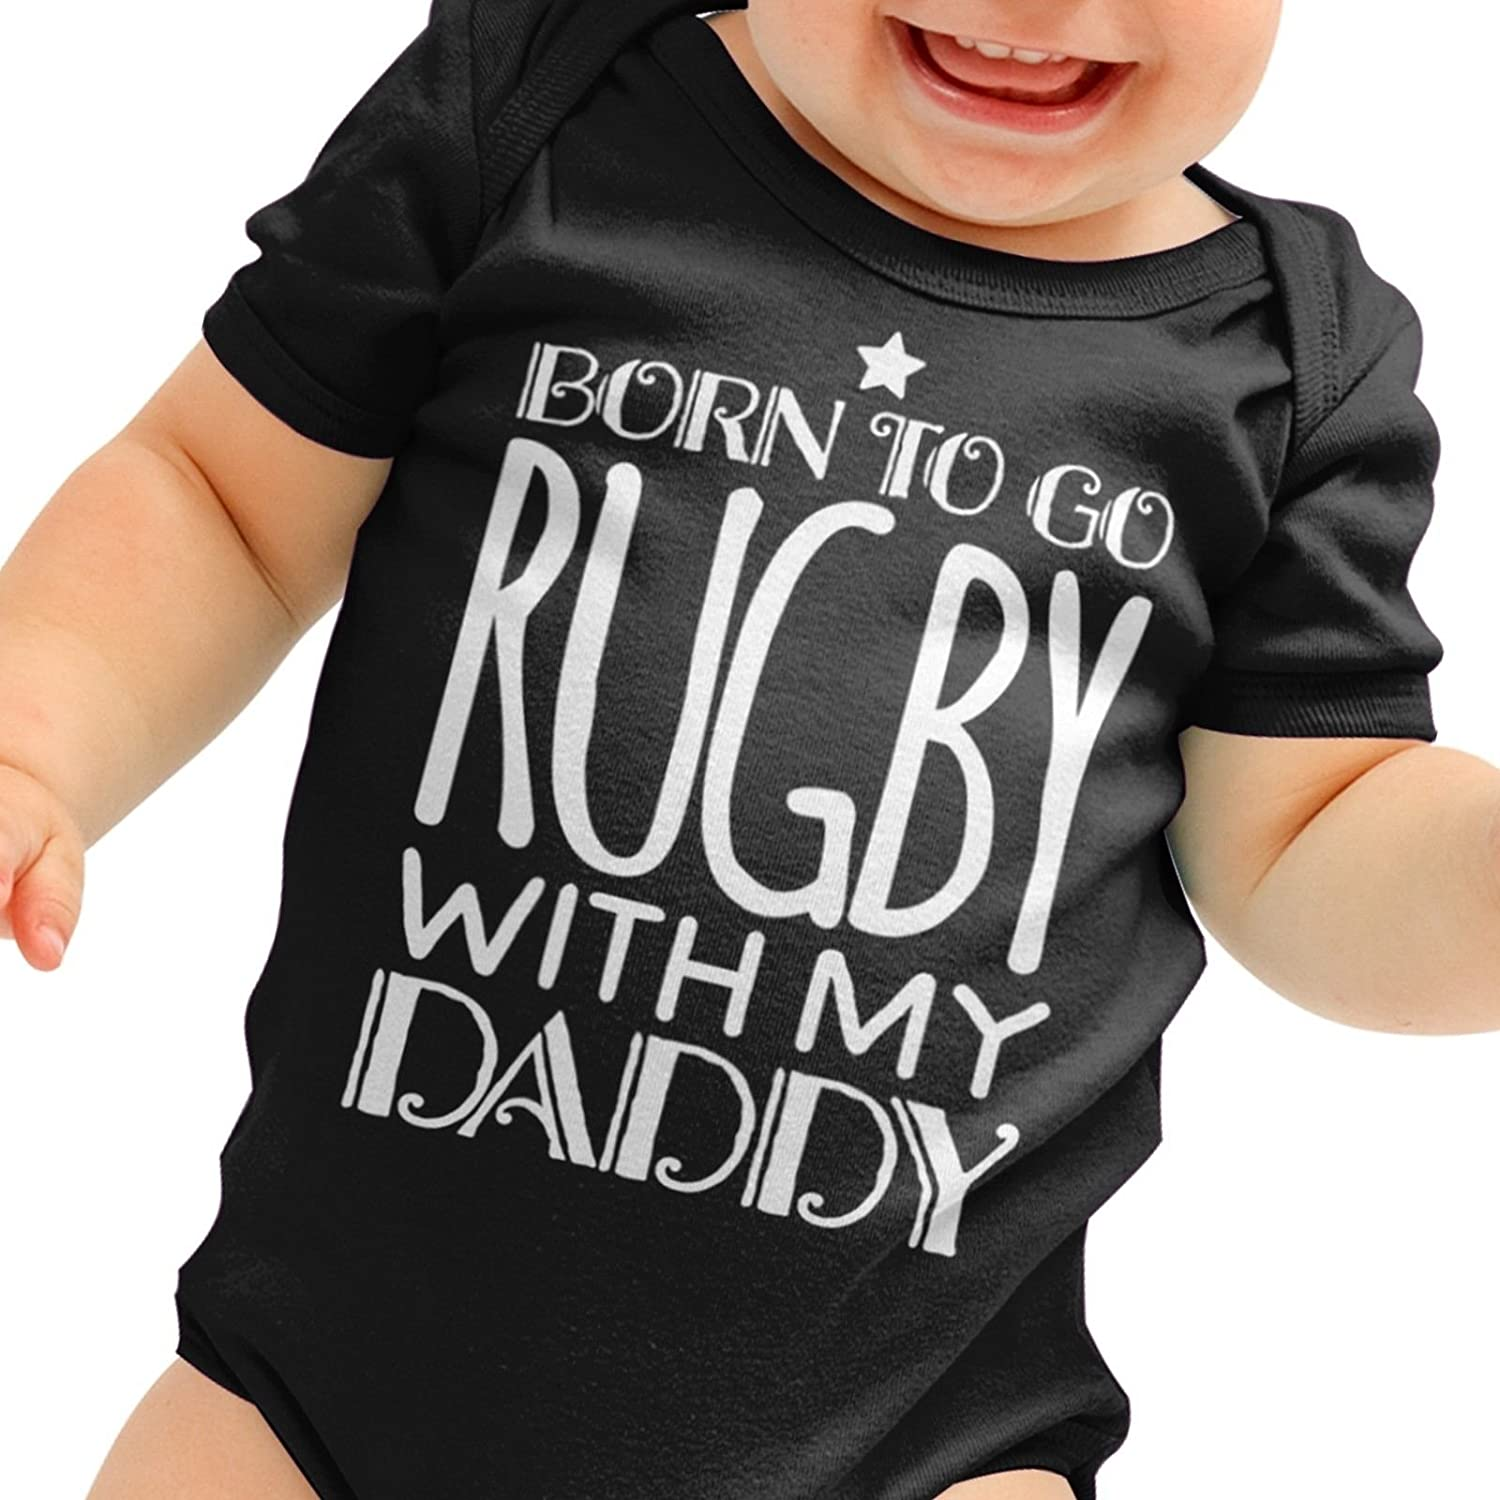 Toddler Clothing 0-3 Months Cute Baby Shower Gift Funny Outfit 6-12 FunkyShirt Funny Baby Grow Born To Go The Rugby With My Daddy Fathers Day 12-18 All Colours 3-6